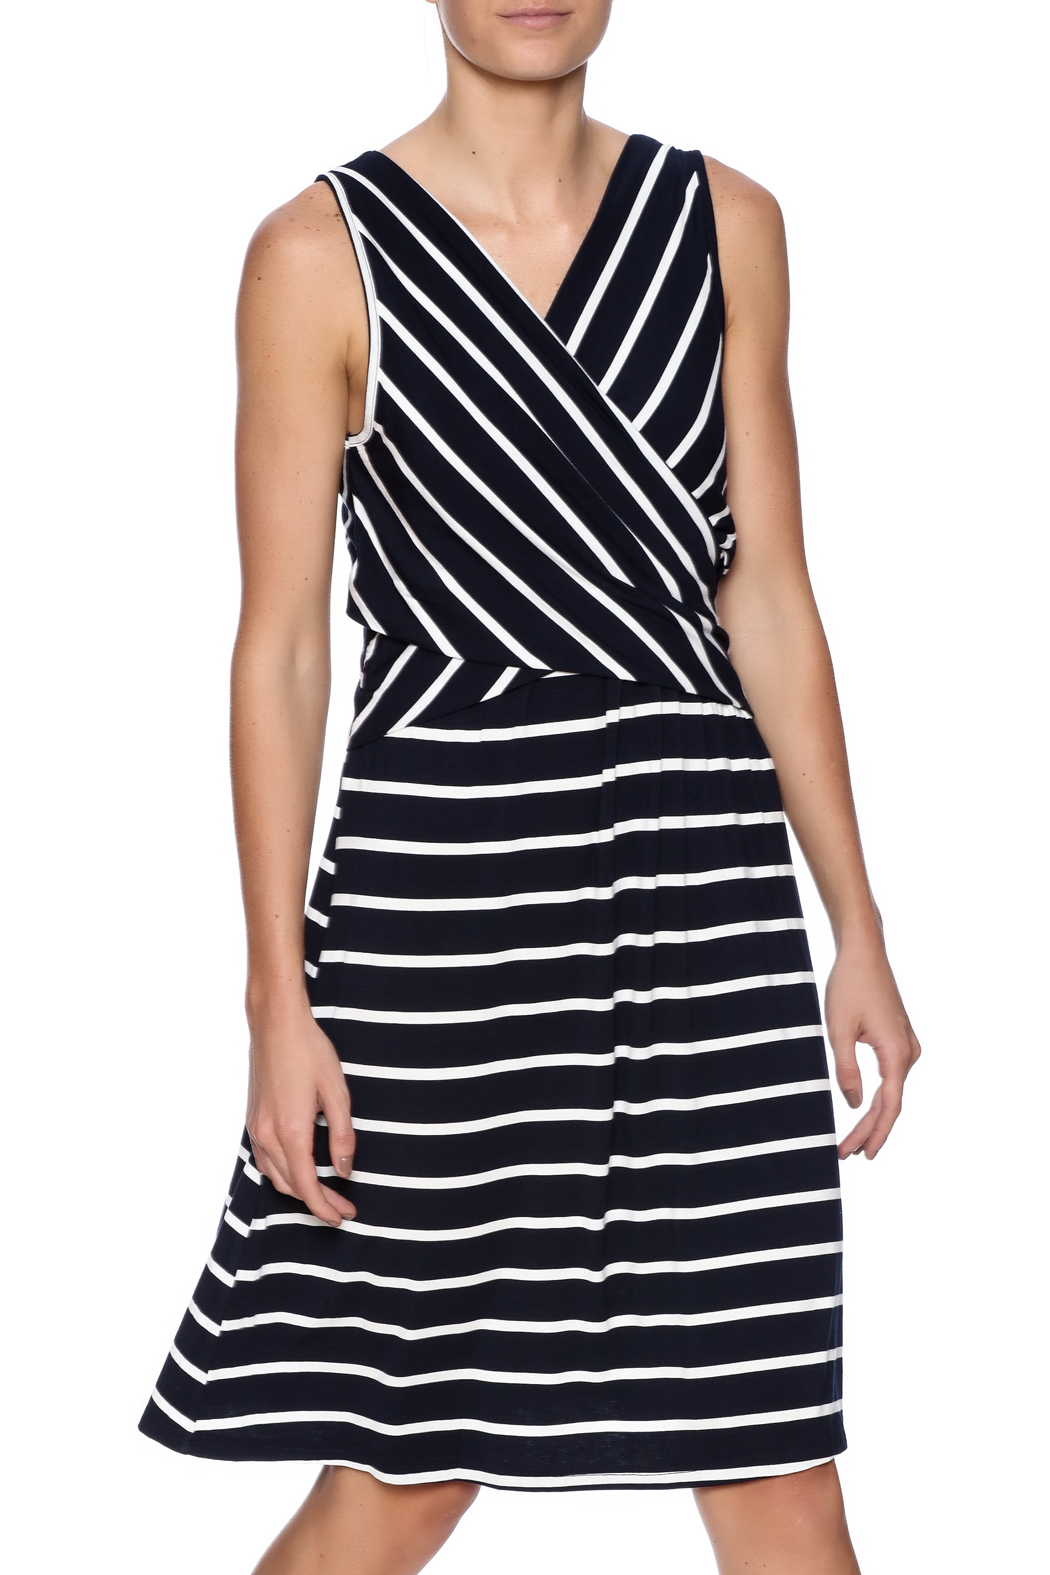 Umgee USA Striped Sleeveless Dress - Front Cropped Image